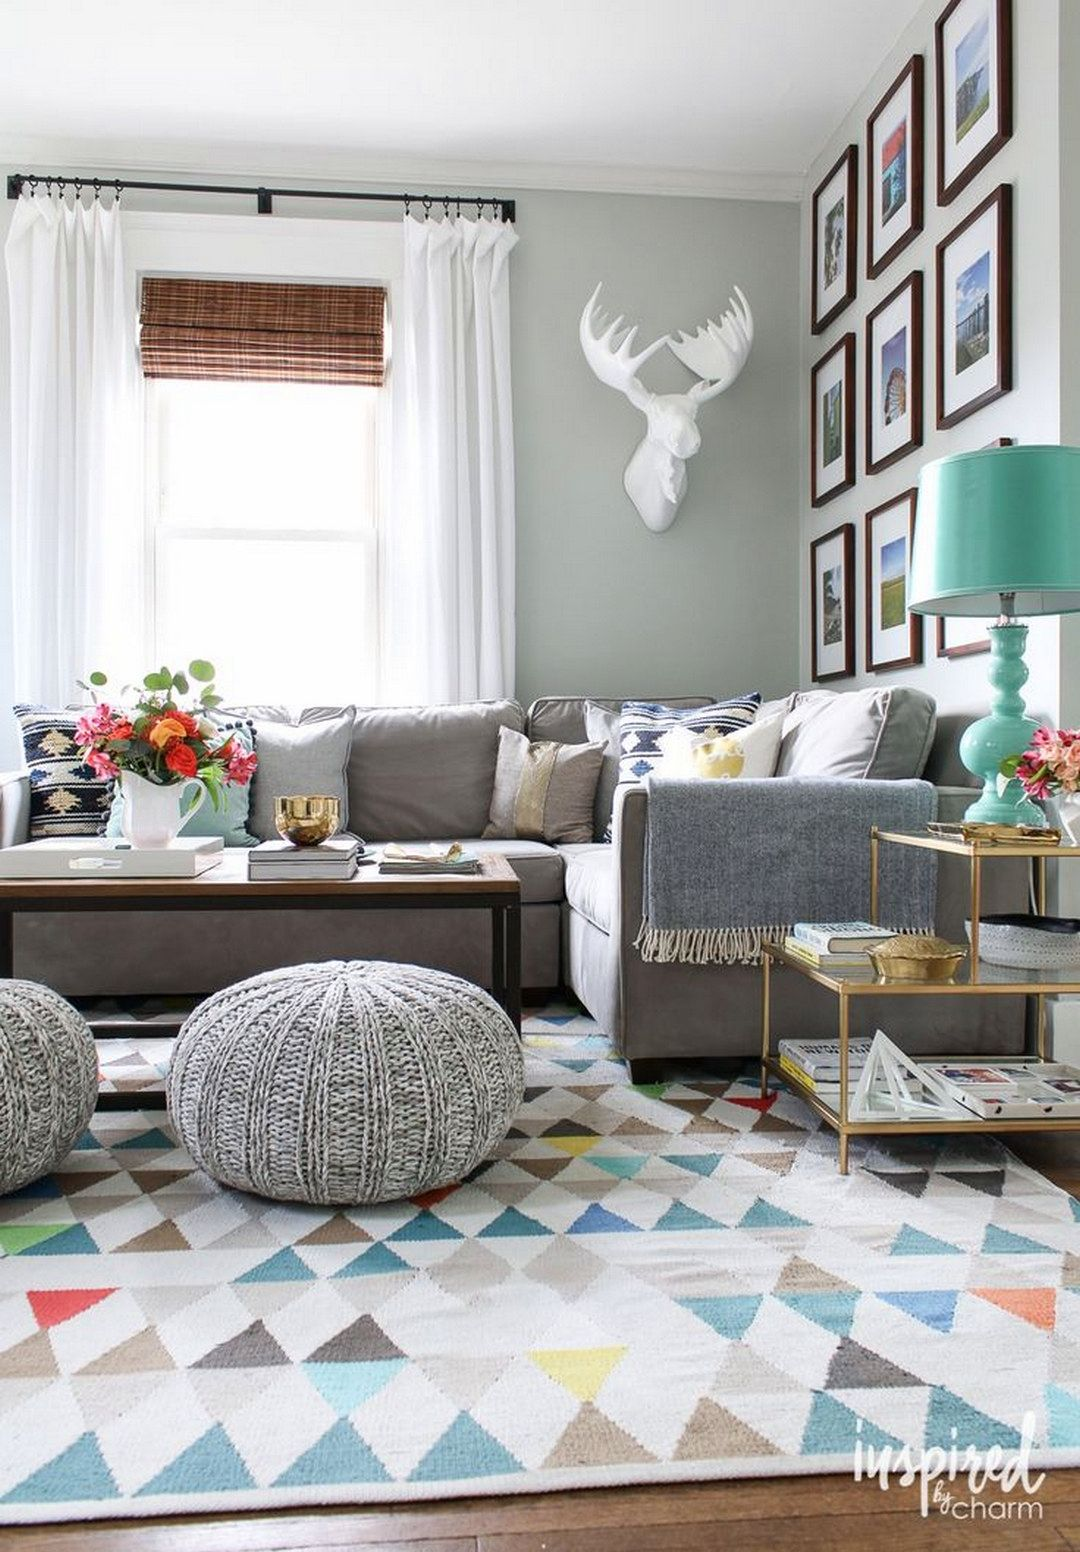 family friendly living room interior ideas also inspired by charm summer home tour  decorate rh pinterest